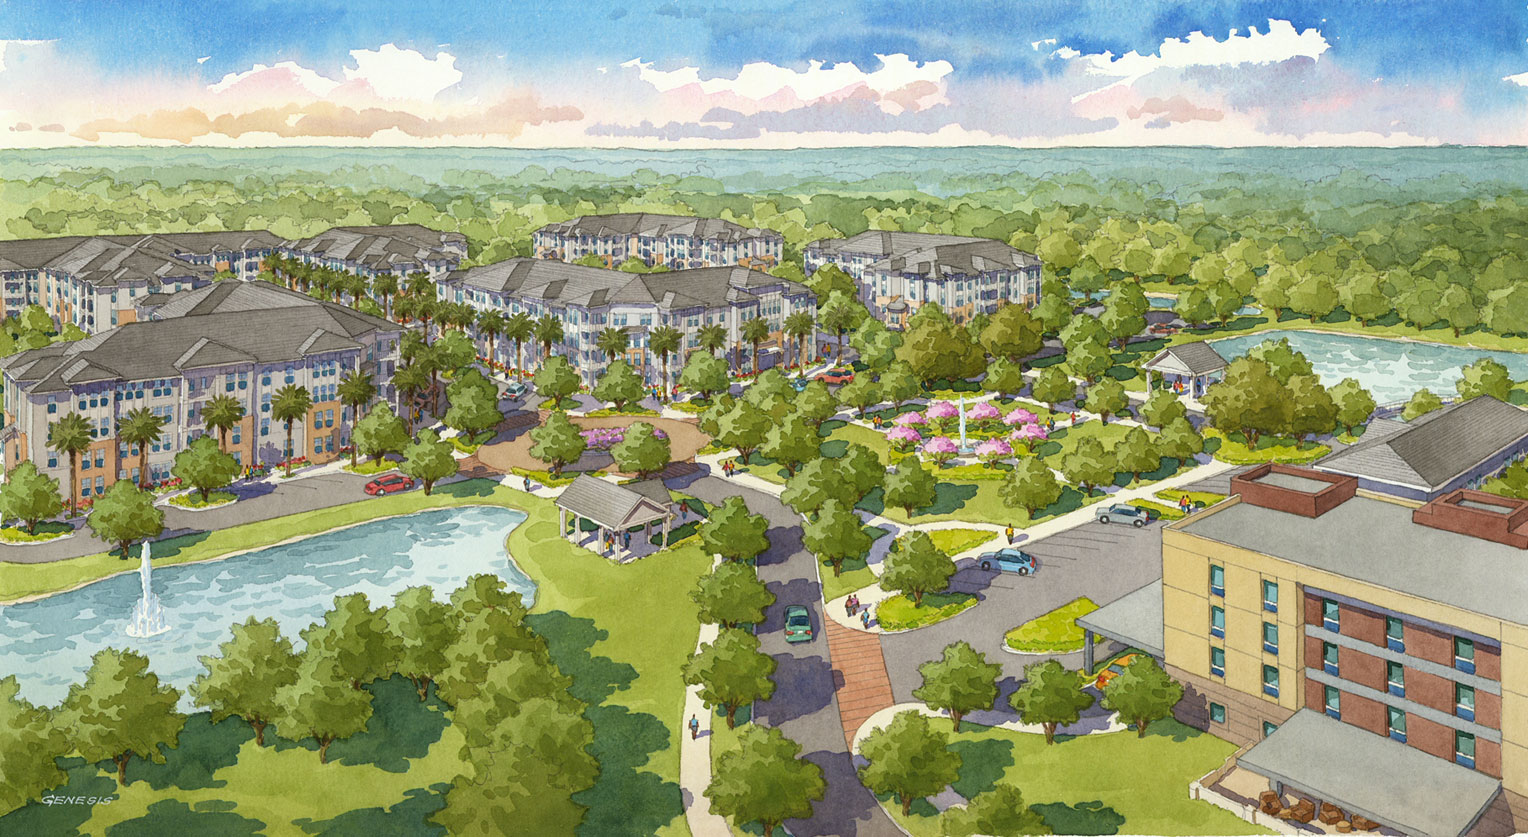 Watercolor Architectural Rendering of Mount Pleasant from an Aerial View for Charlan Brock Associates